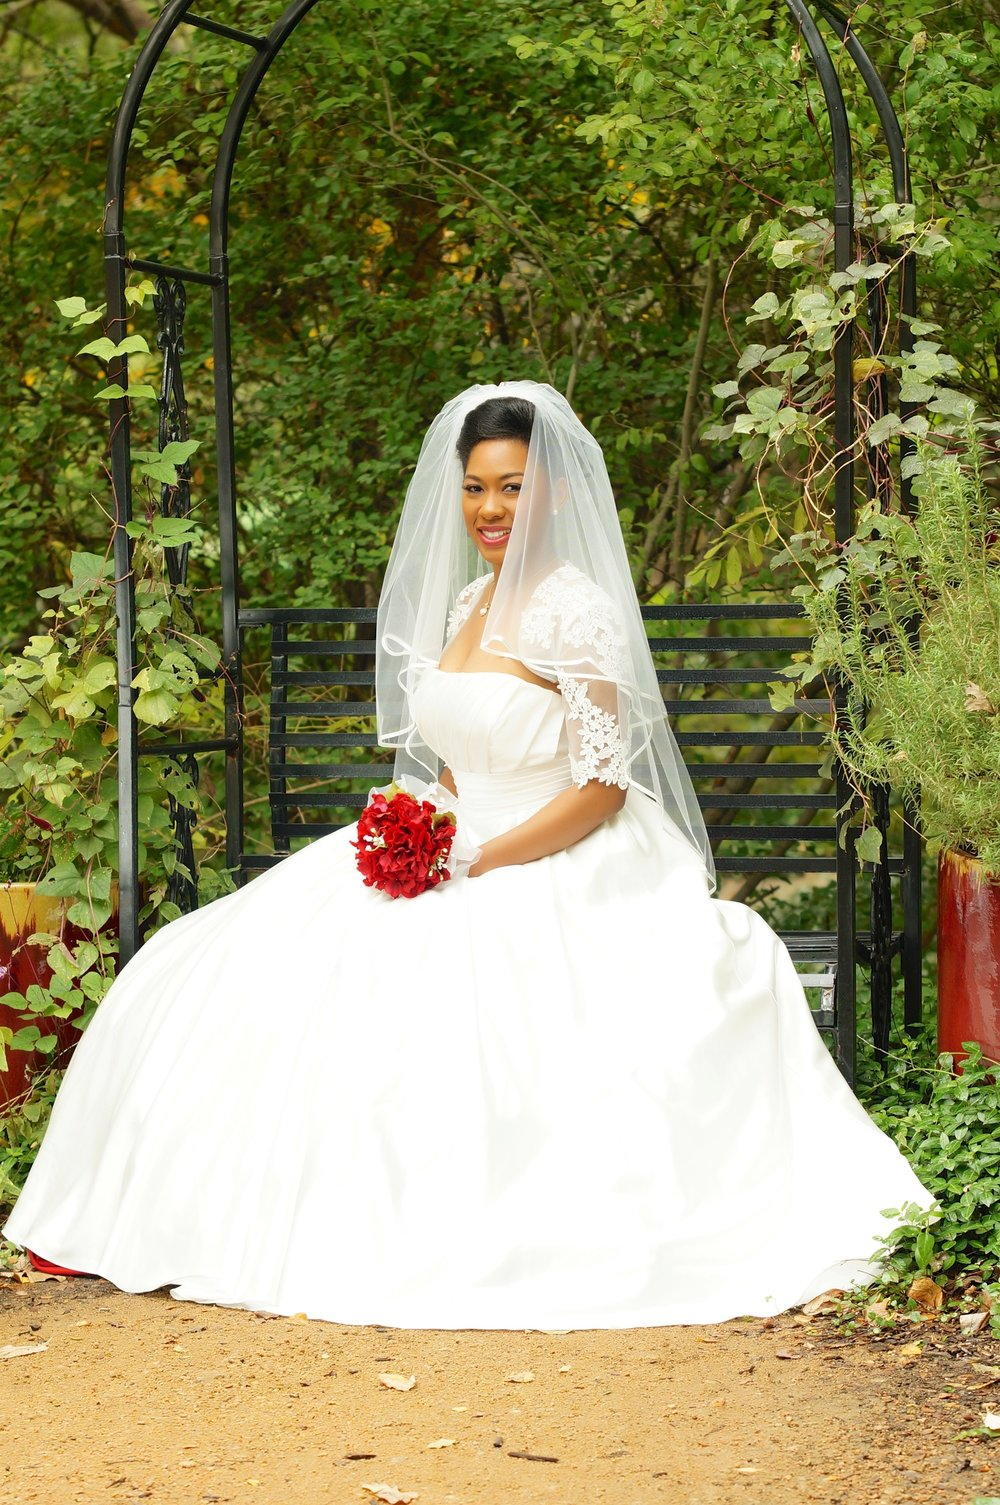 BRIDAL SESSION - Add $495